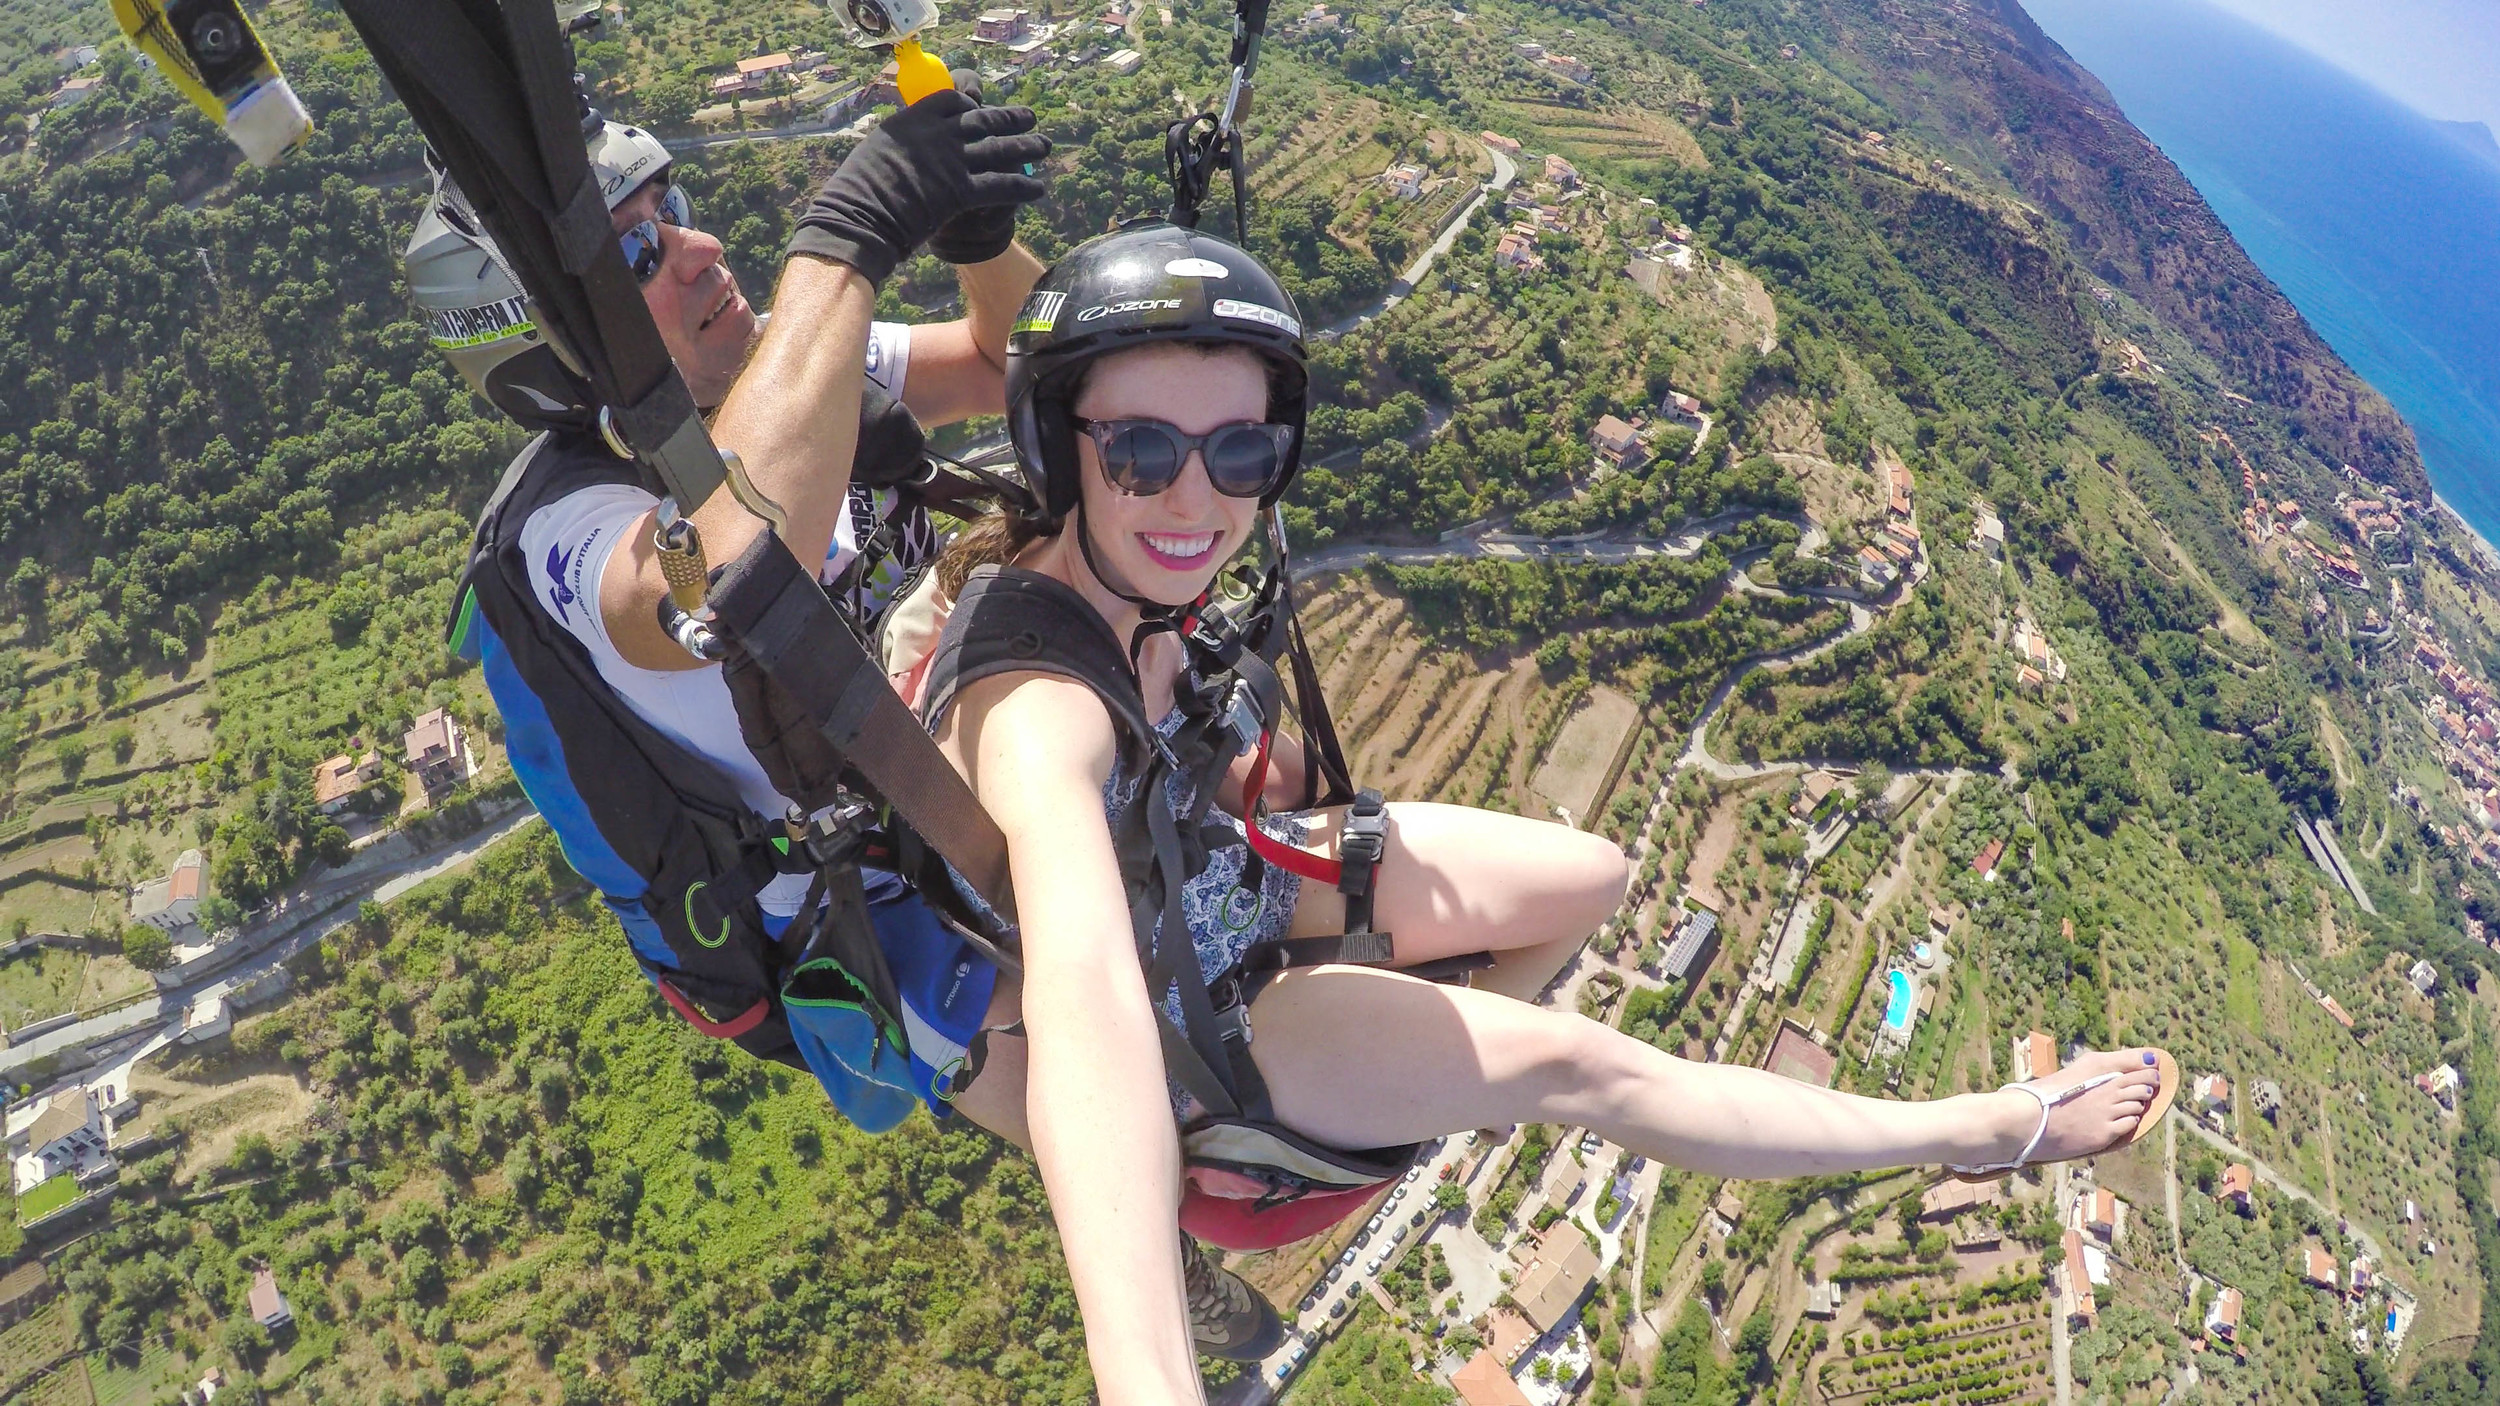 PARAGLIDING IN SICILY